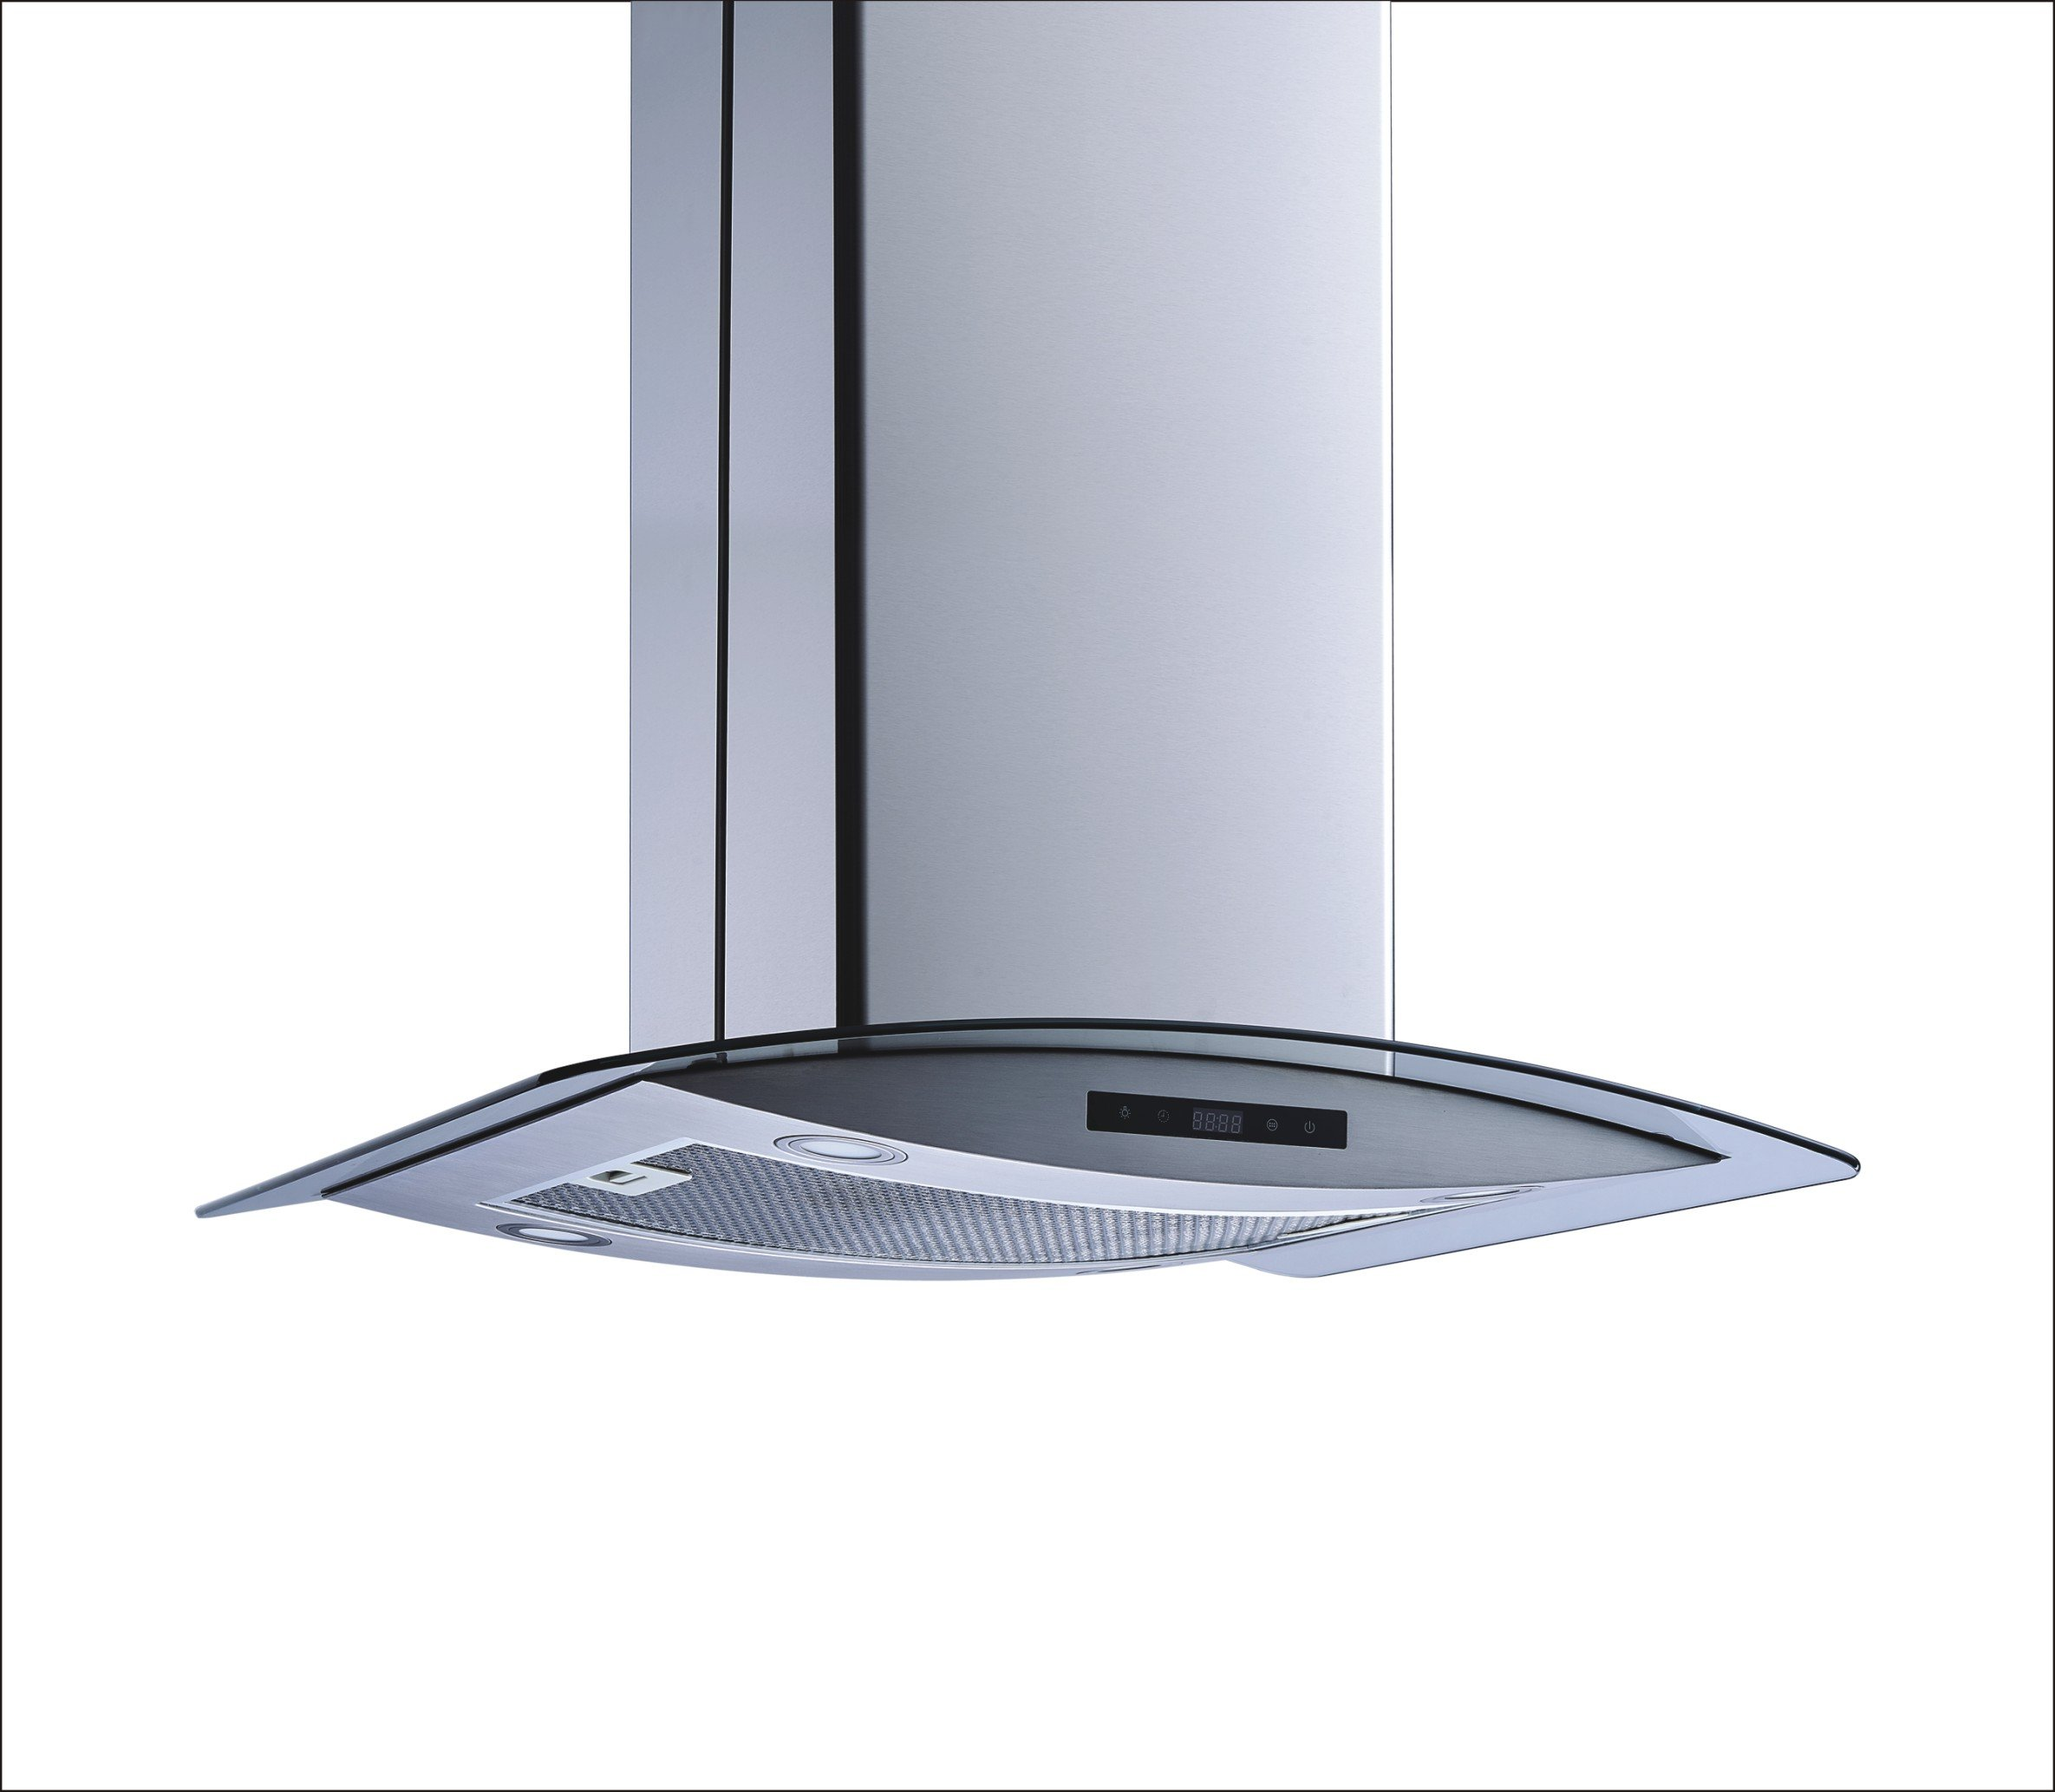 Winflo 36'' Island Stainless Steel/Arched Tempered Glass Ducted/Ductless Kitchen Range Hood with 450 CFM Air Flow LED Display Touch Control Included Dishwasher-Safe Aluminum Filter and 4x2W LED Lights by Winflo (Image #5)